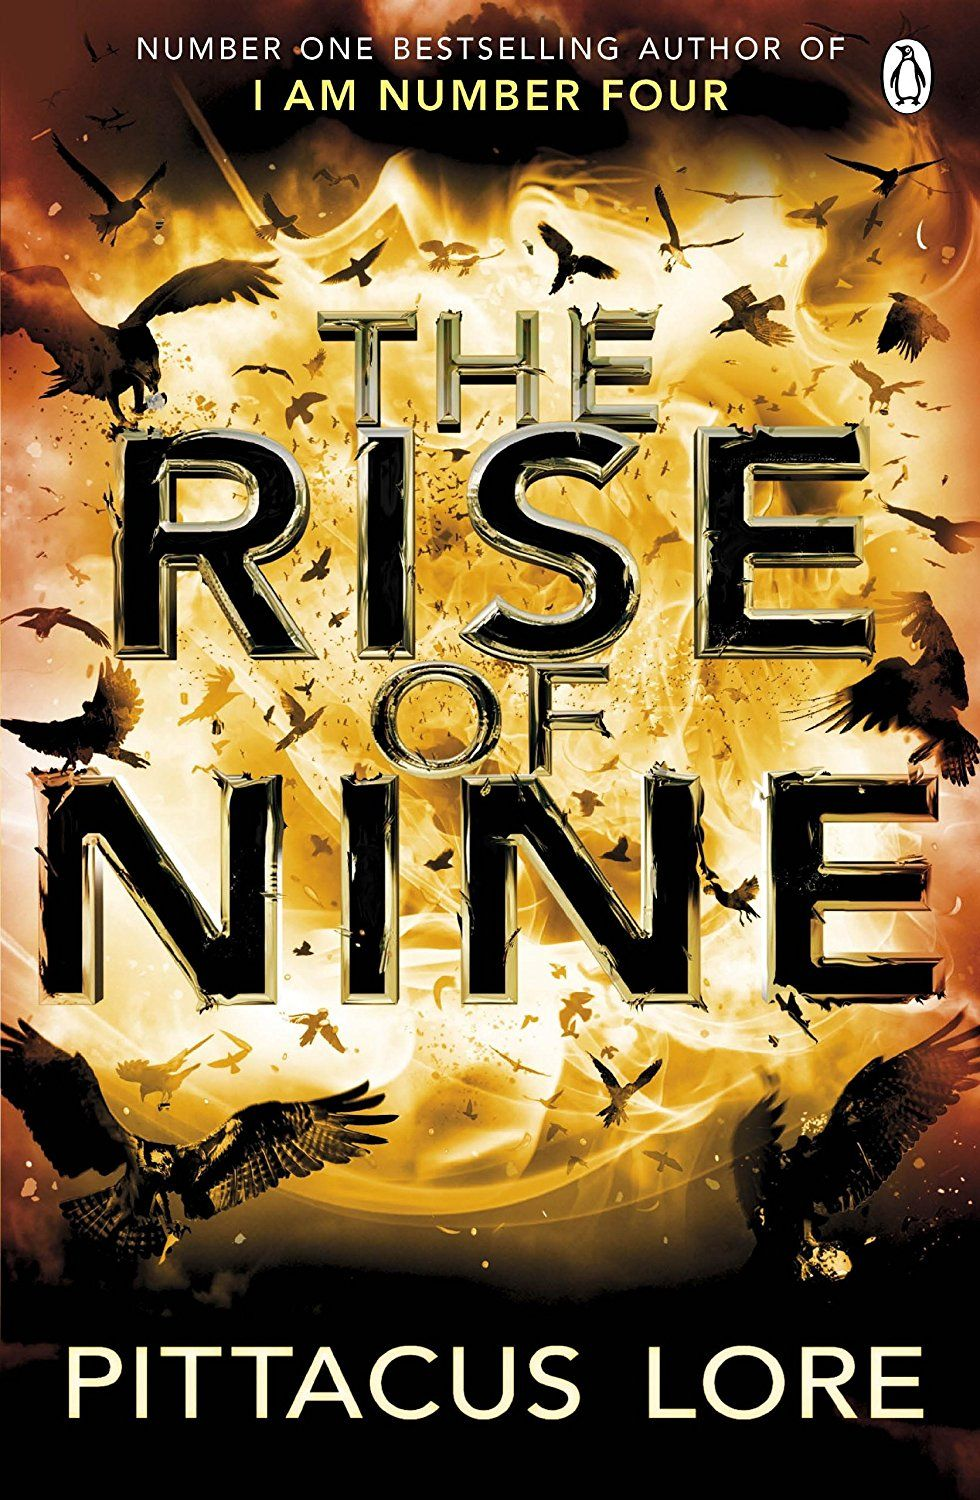 Pittacus Lore Ebook